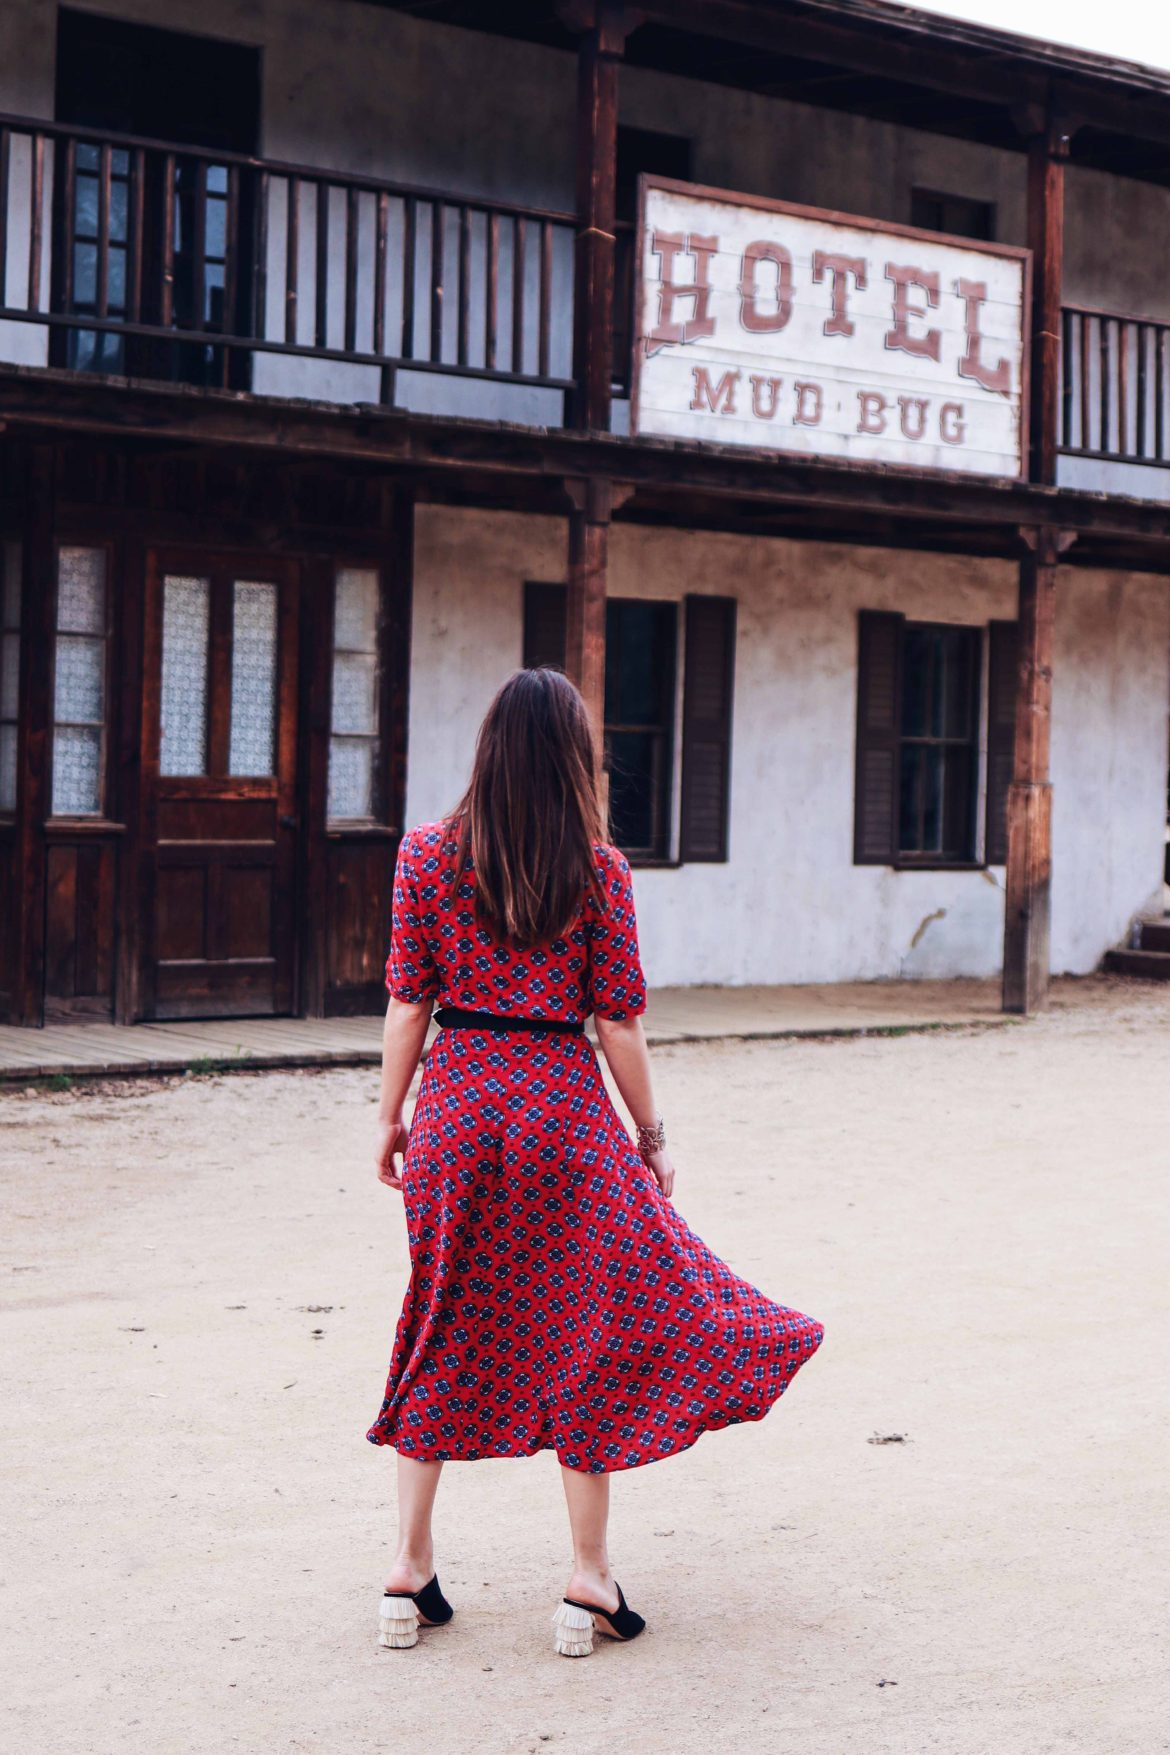 Sandro Paris Western Dress. Spring Fashion 2018 trend: Western Outfit. Channeling Westworld, one of the coolest show to watch on HBO this April - More on Houseofcomil.com. Pictures Julia Comil